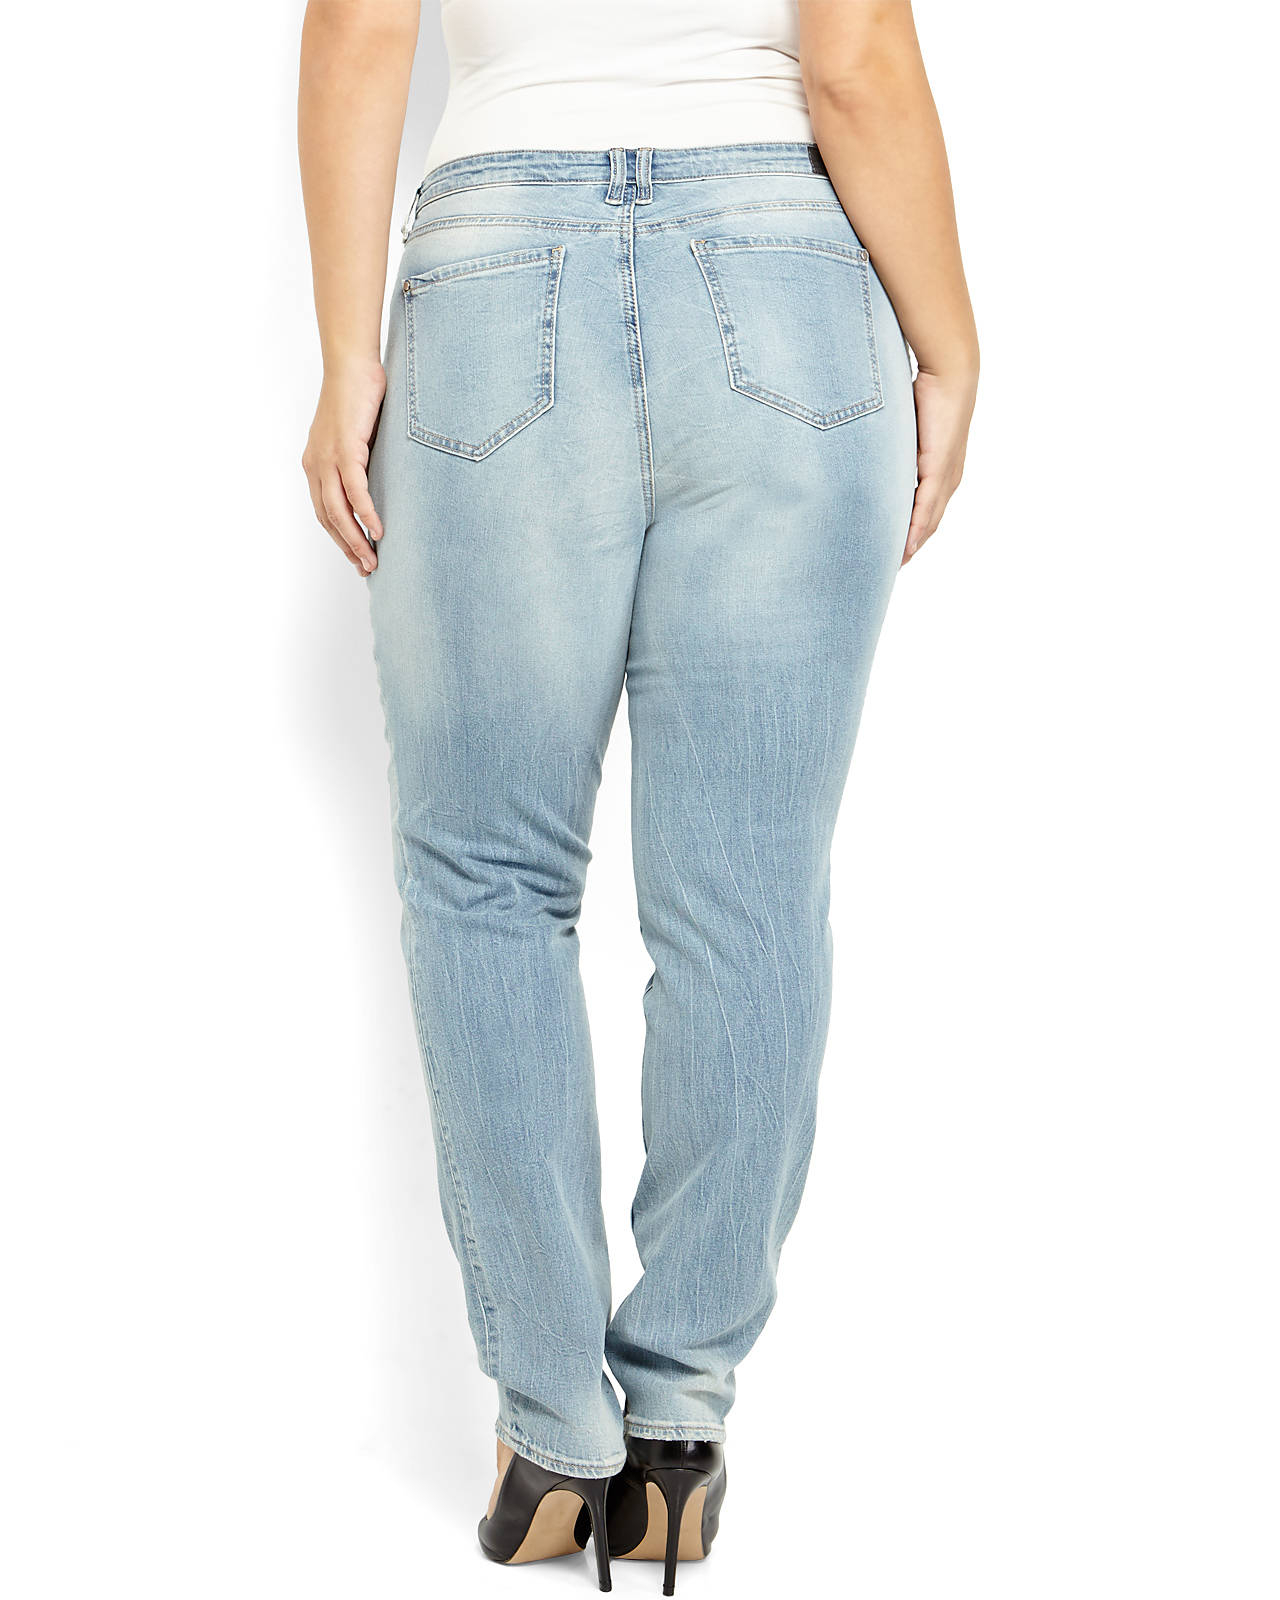 Dkny Plus Size Light Wash Mercer Skinny Jeans in Blue | Lyst